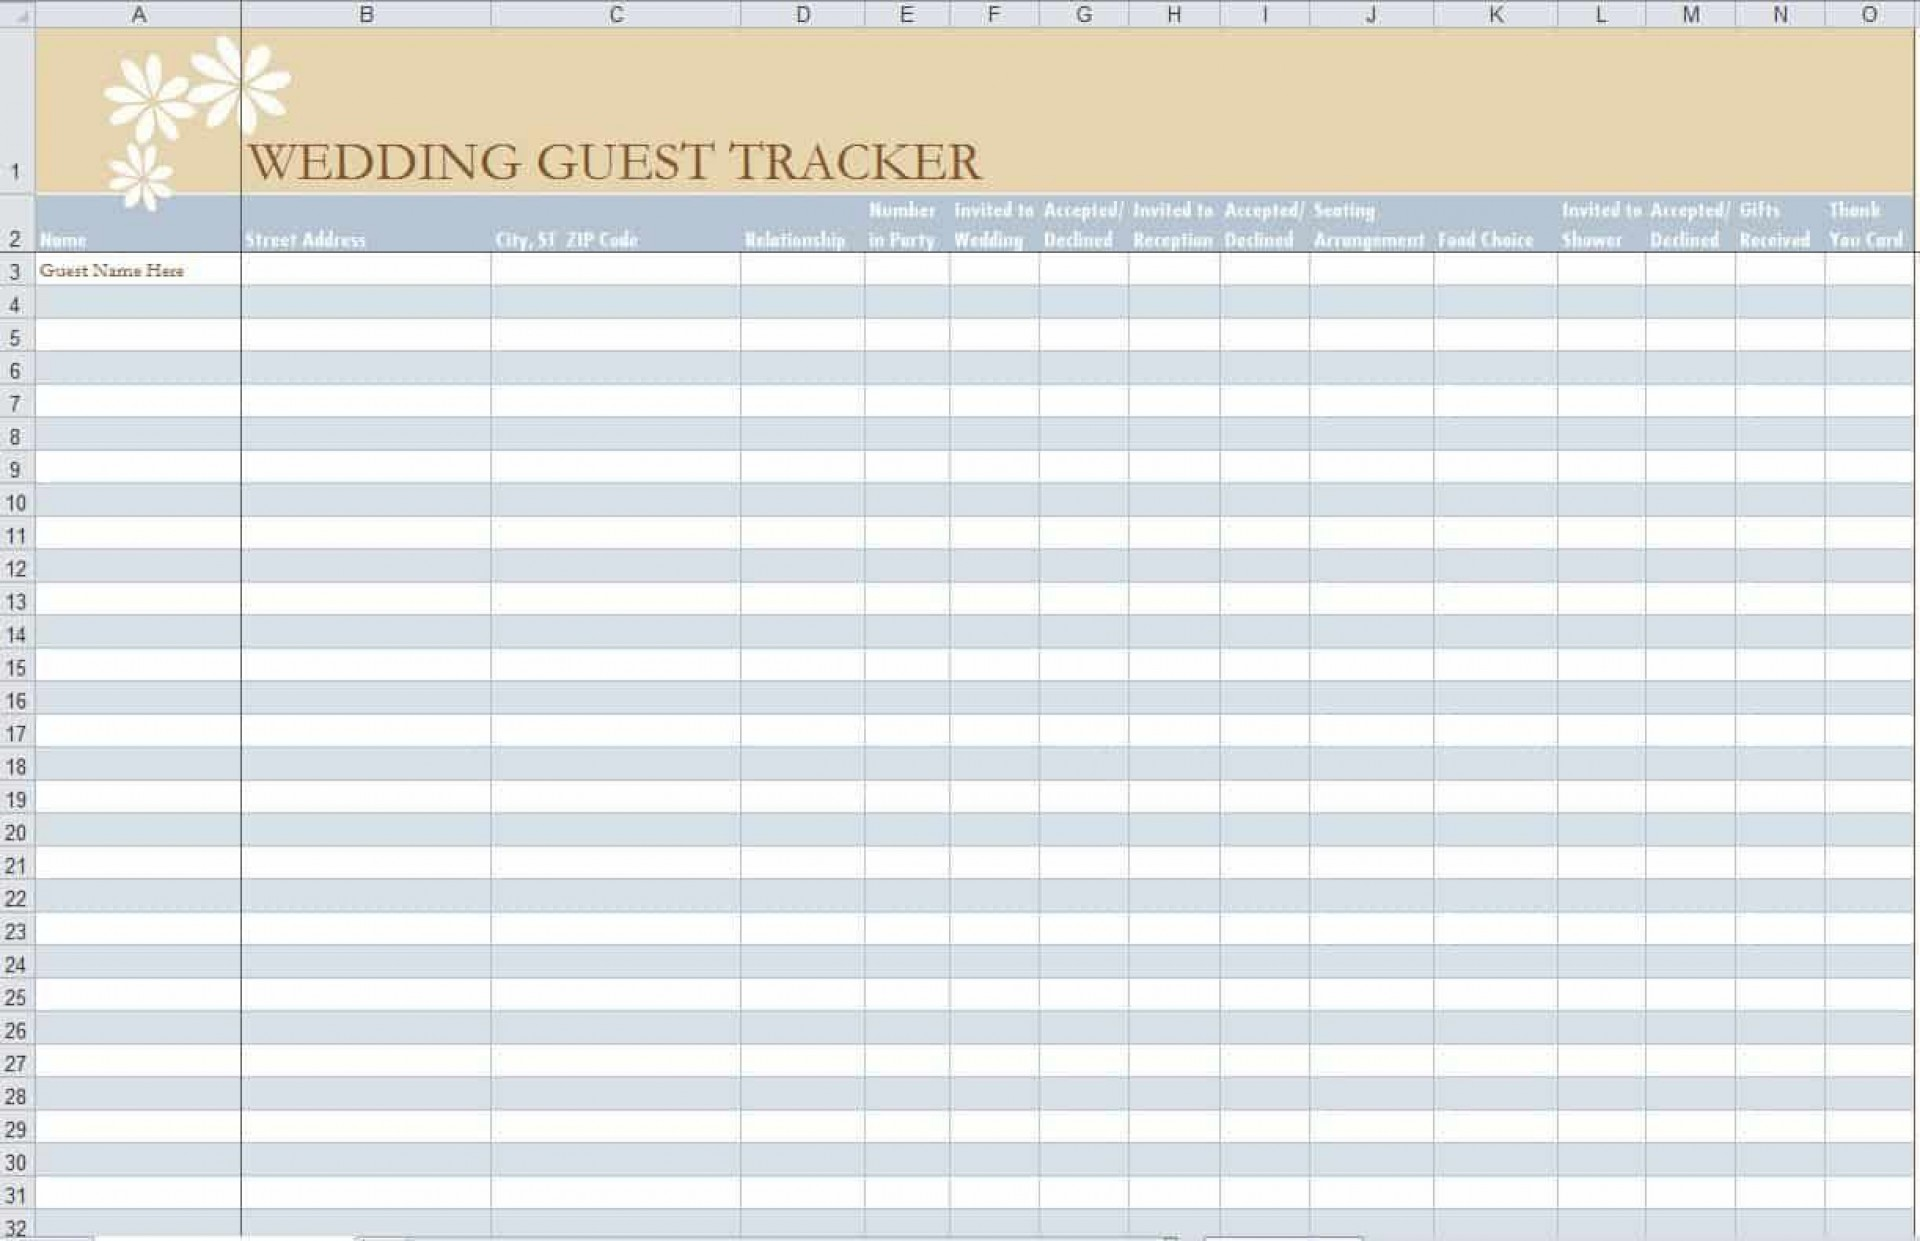 005 Stirring Party Guest List Template Excel Free High Definition 1920